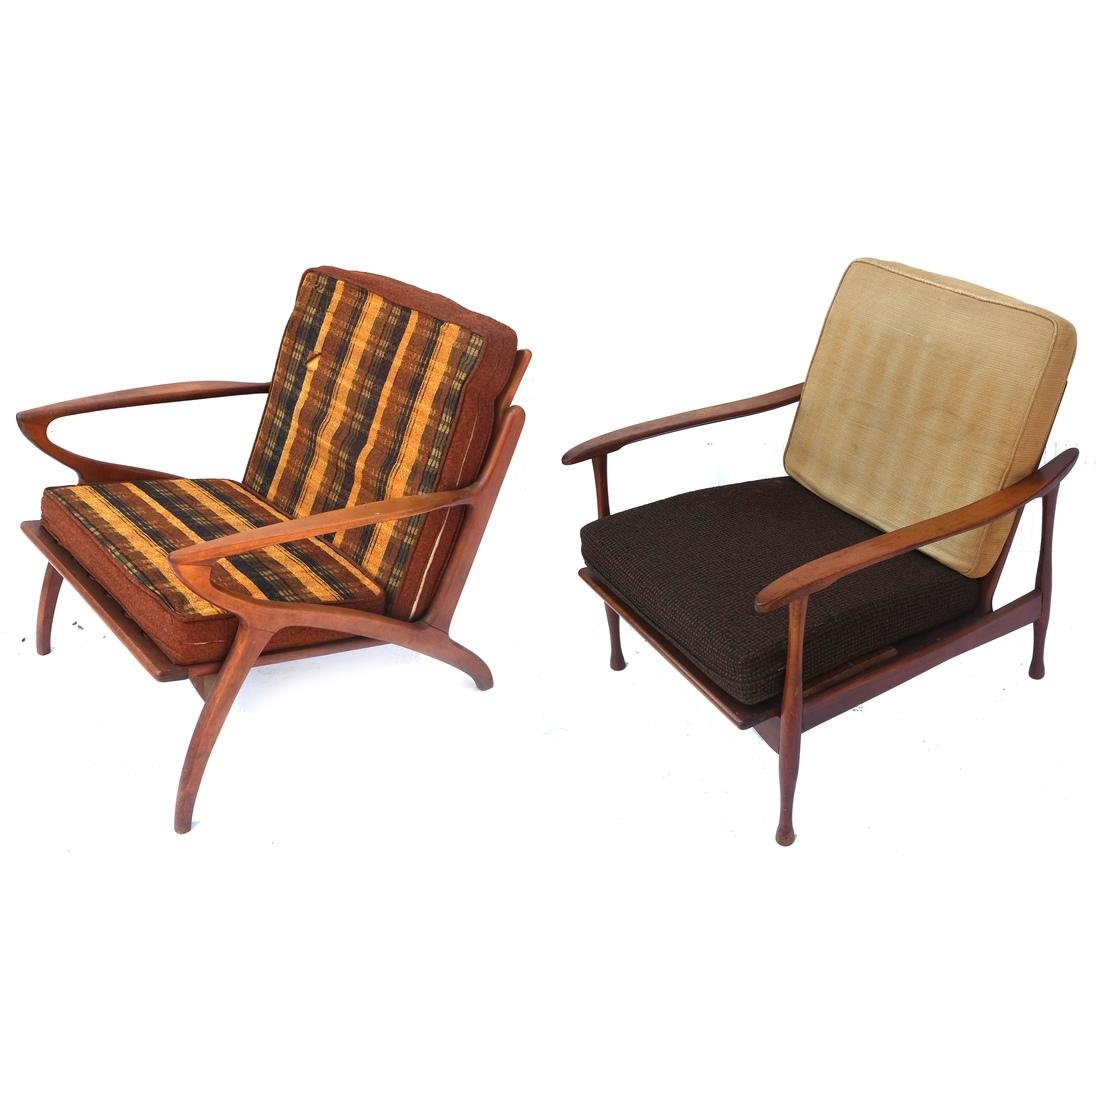 Two 20th Century Modern Armchairs